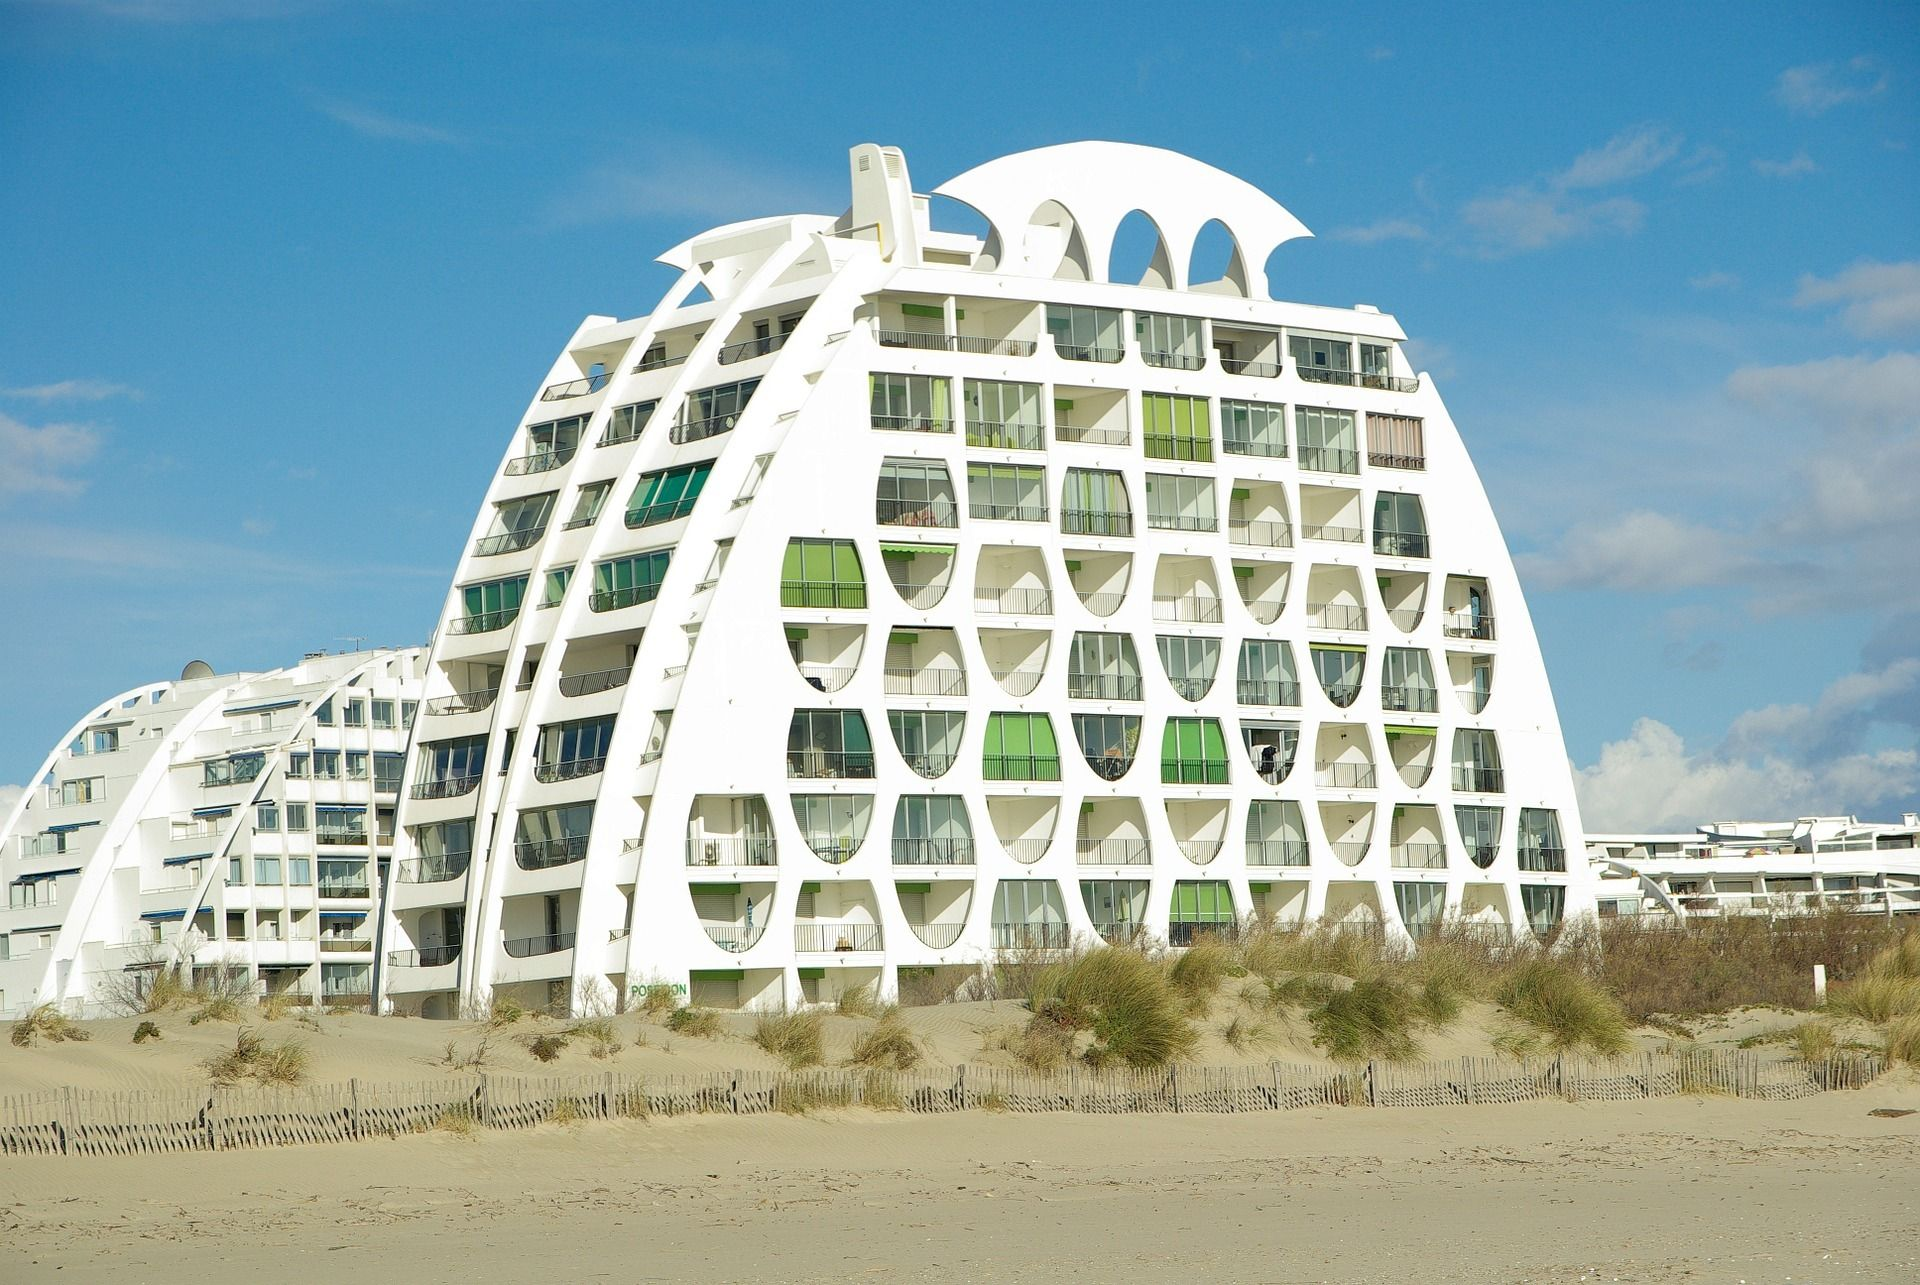 Image 5 Of 16 From Gallery Of When Architecture And Tourism Meet La Grande Motte S Pyramids By The Seaside Pu La Grande Motte Beautiful Buildings Montpellier